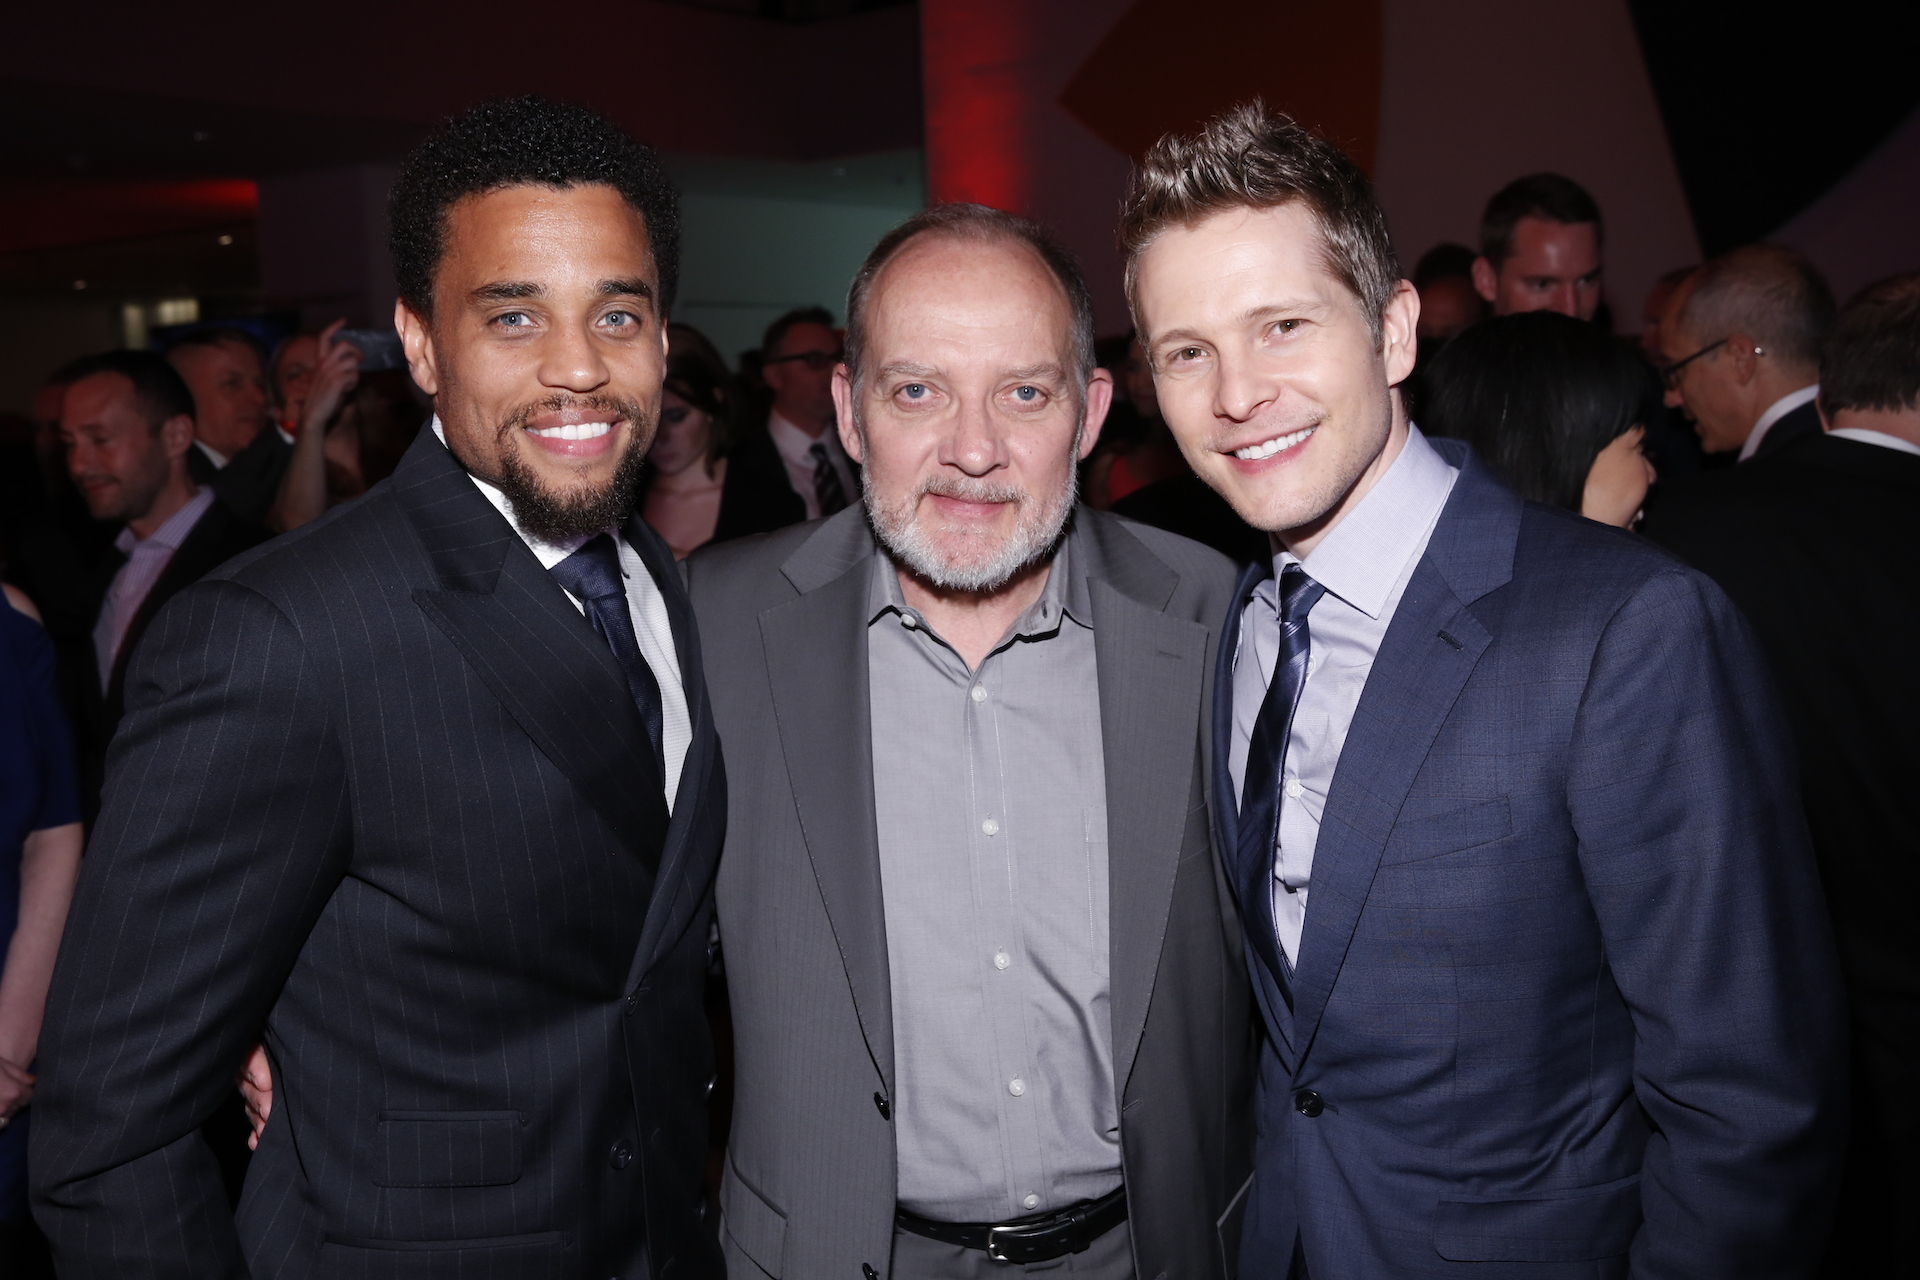 Michael Ealy, Zach Grenier, and Matt Czuchry